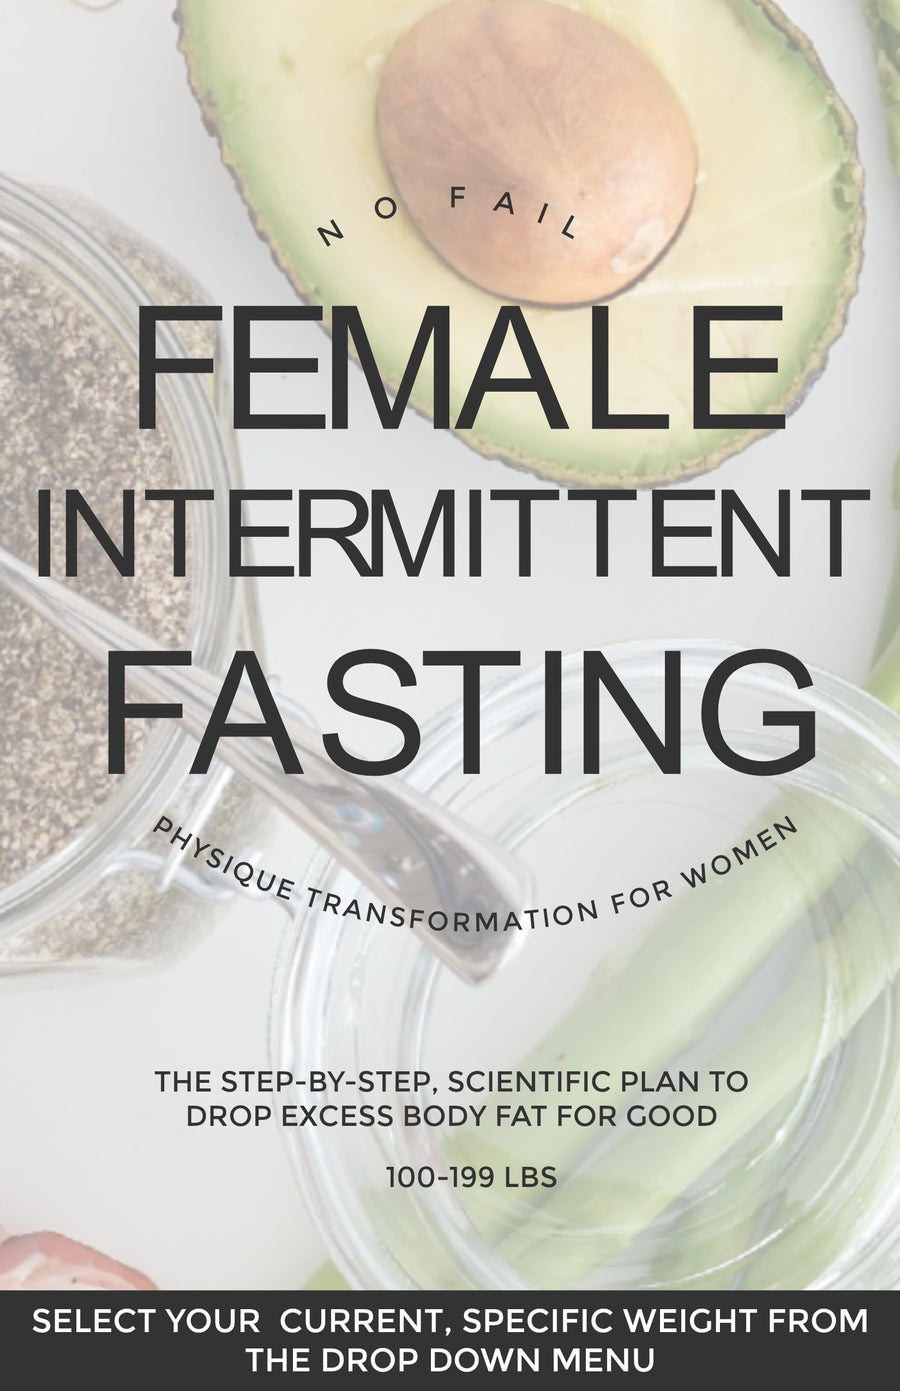 Female Intermittent Fasting for Keto Fat Loss Women